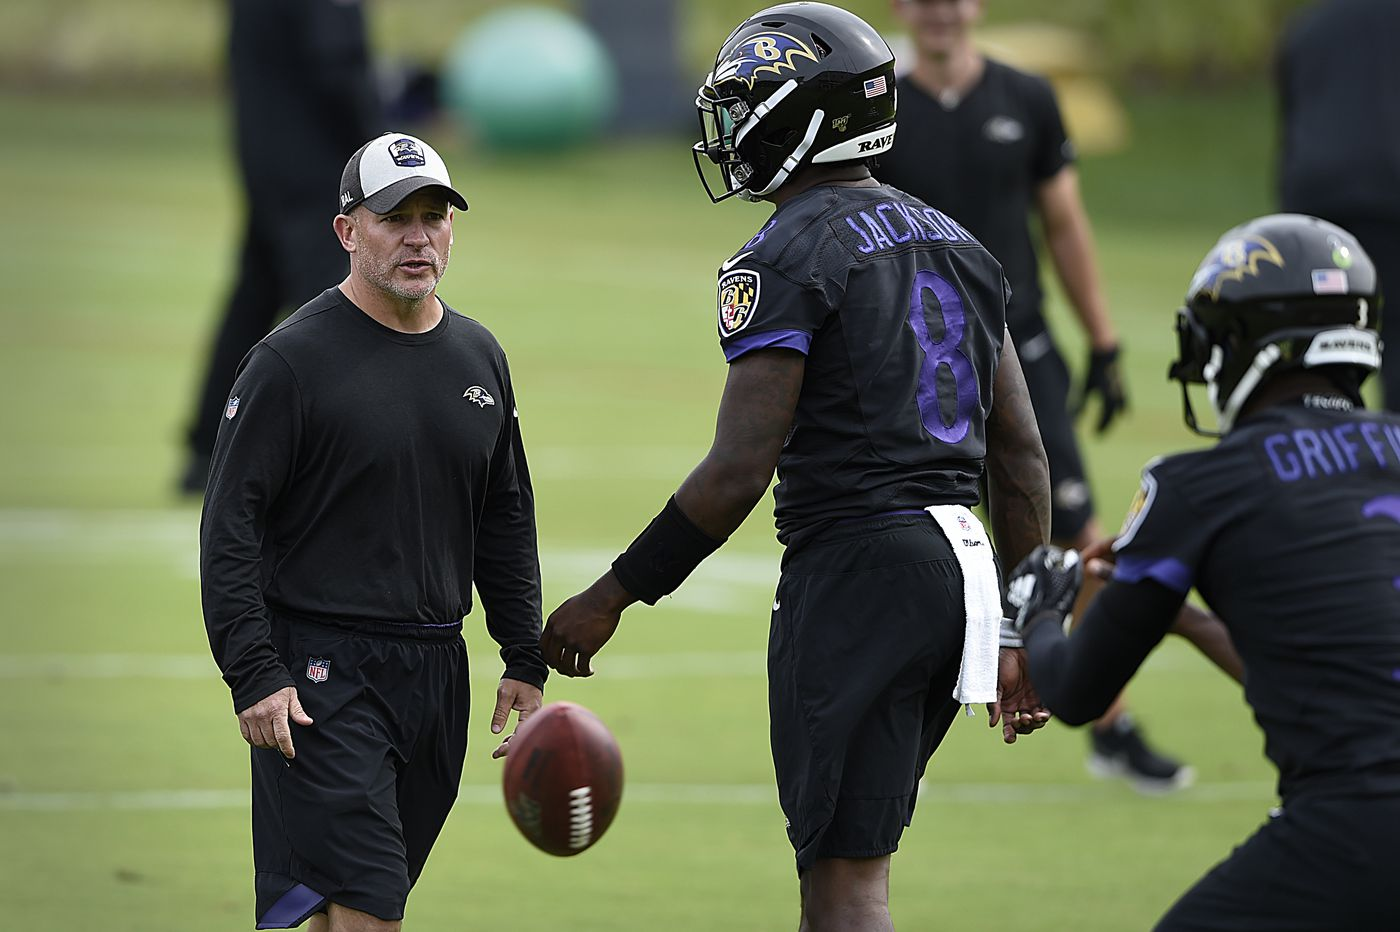 Ravens coach John Harbaugh says James Urban and Bobby Engram won't be leaving for the Eagles